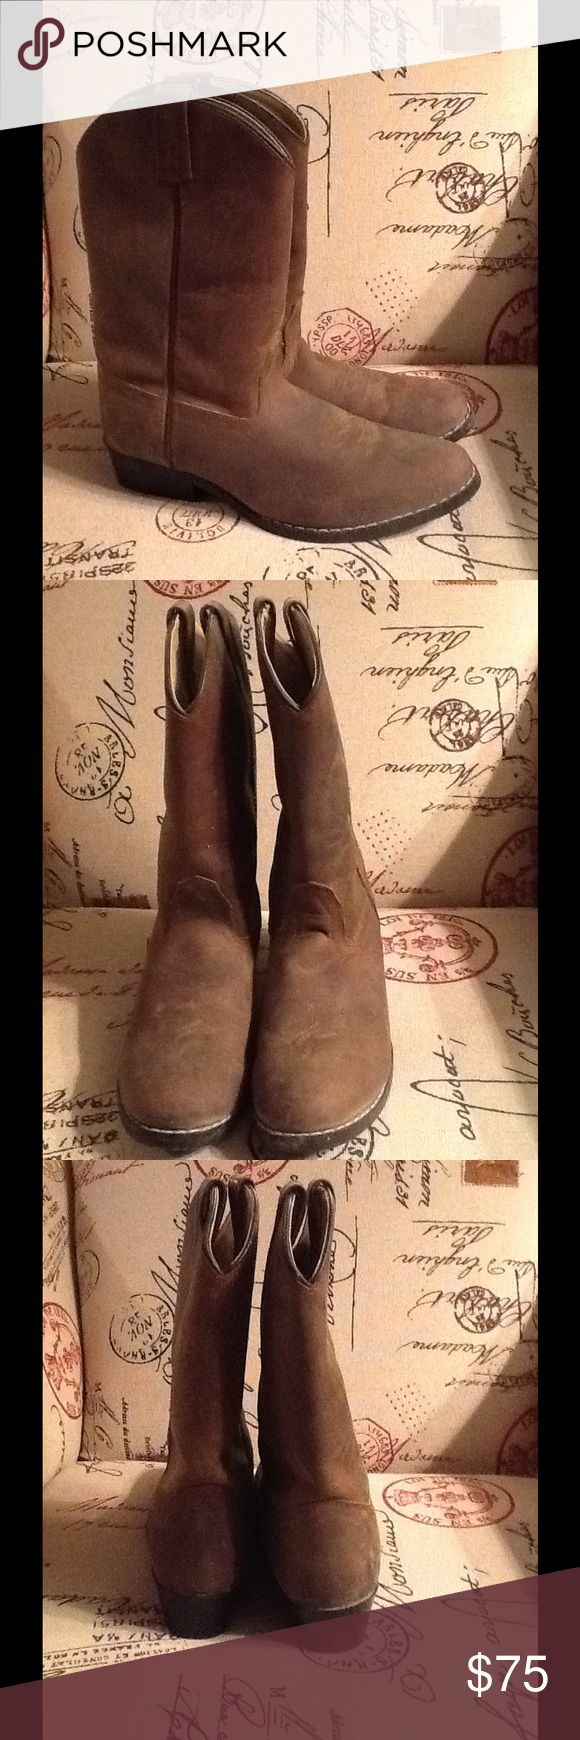 Kids Cowboy Boots from Nashville, TN Kids Cowboy Boots from Nashville!! Purchased new from Boot Country in Nasvhille, TN and only worn twice. Amazing deal!!! Leather. Masterson Boot Co.  Shoes Boots